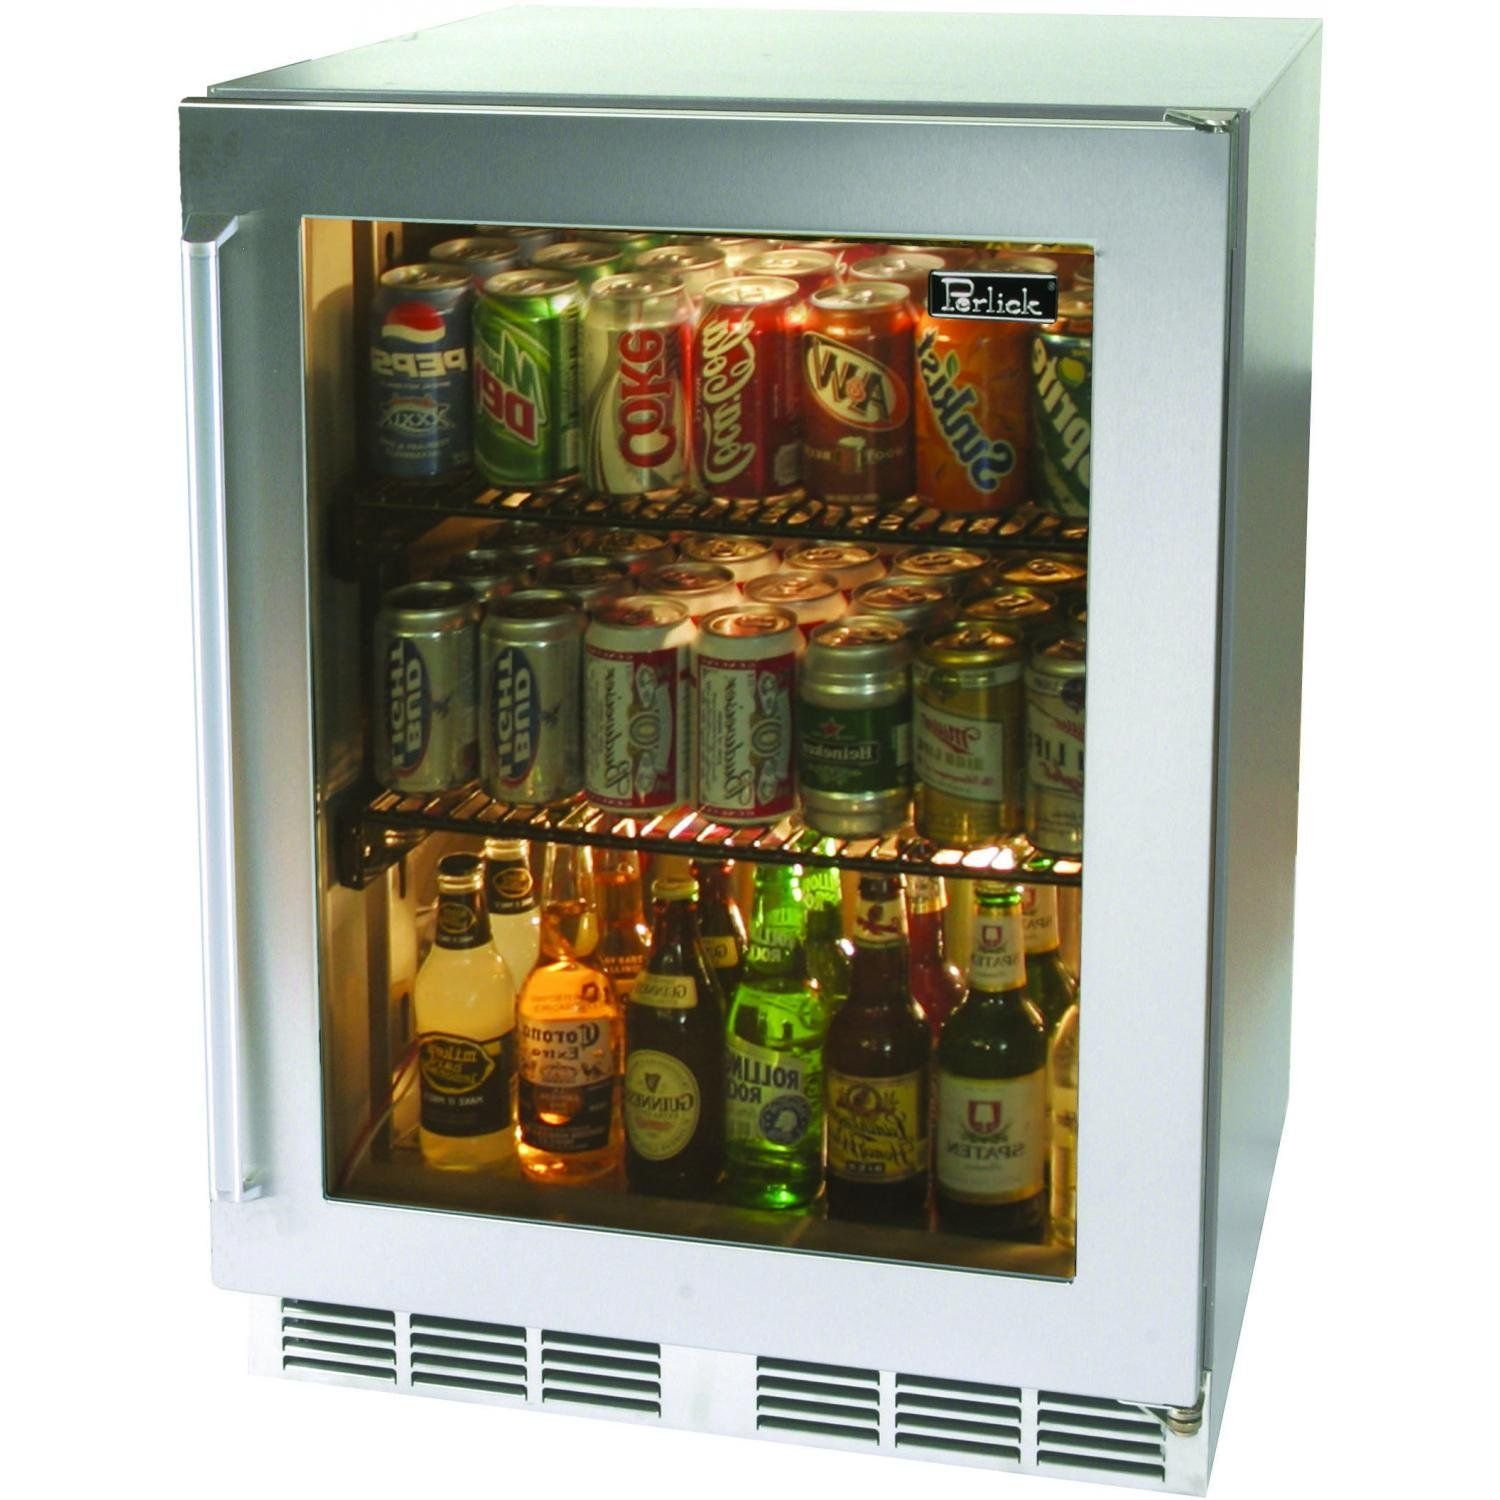 nice small glass door refrigerator for home with cool 3 tiers and